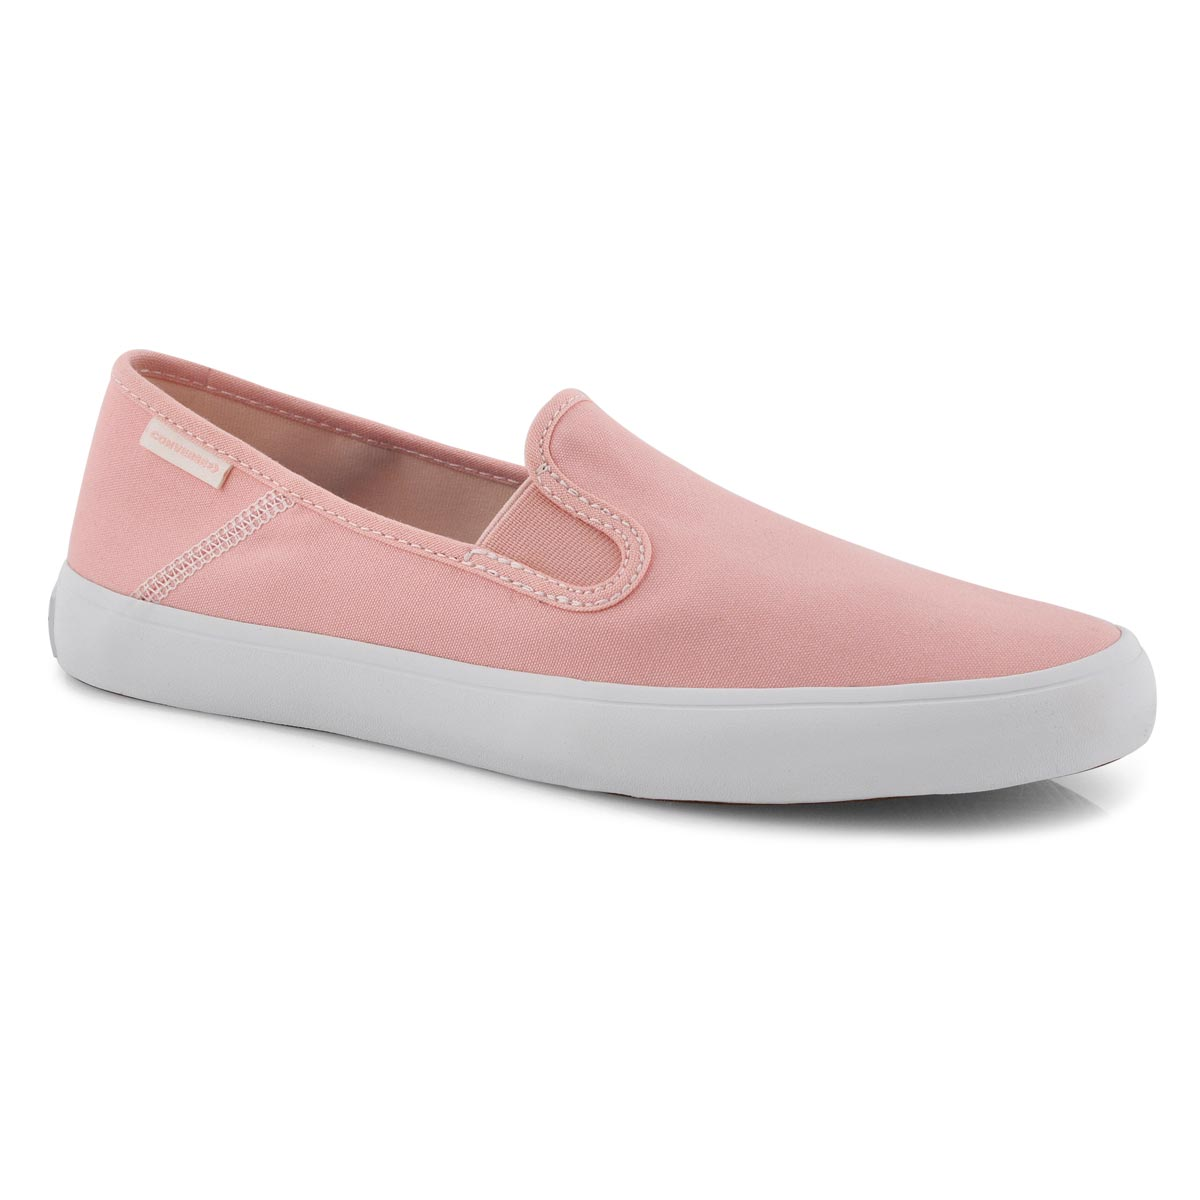 RIO bleached coral slip on